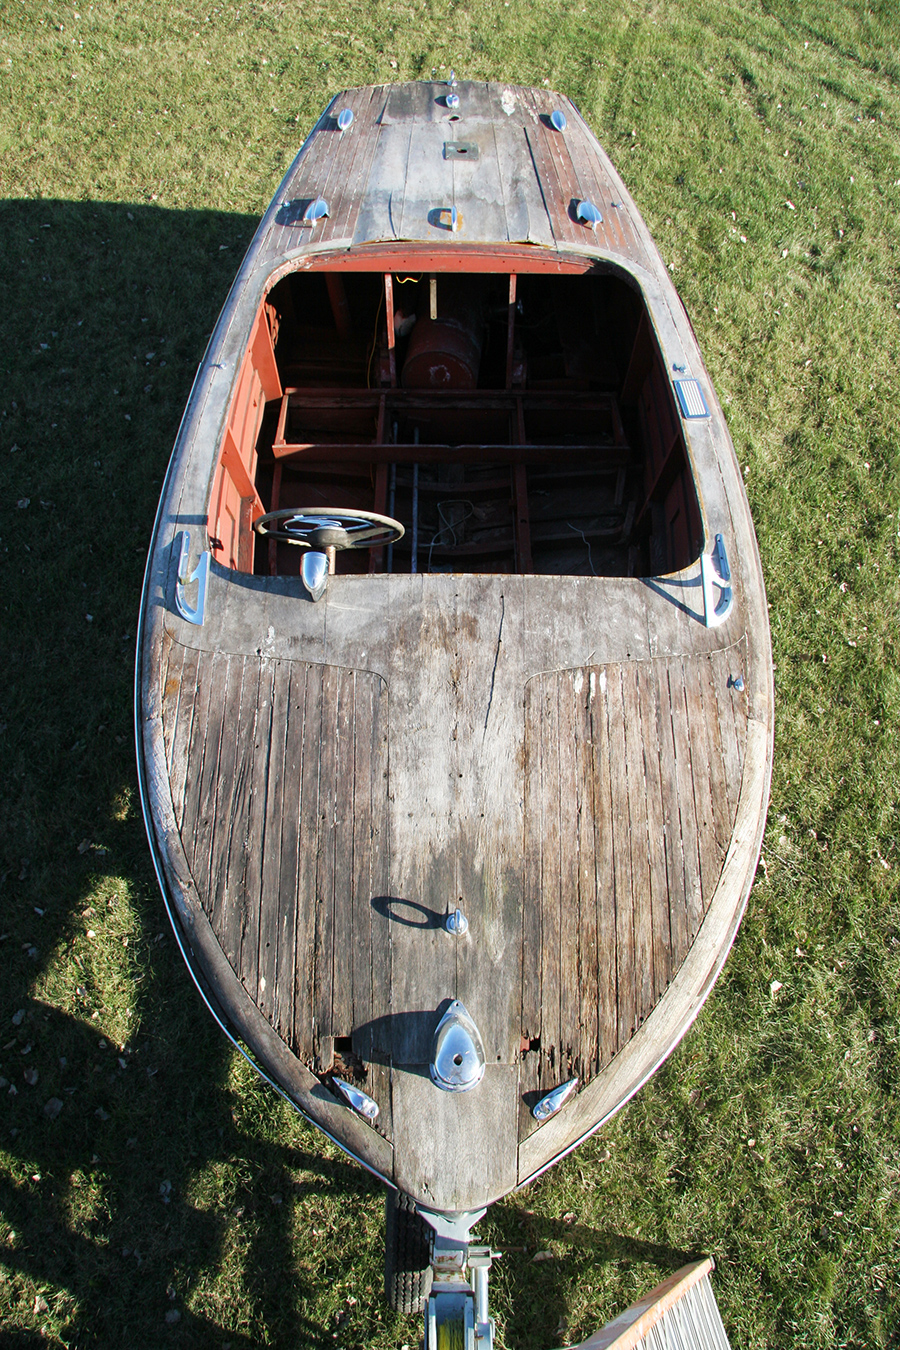 Chris Craft wooden project boat